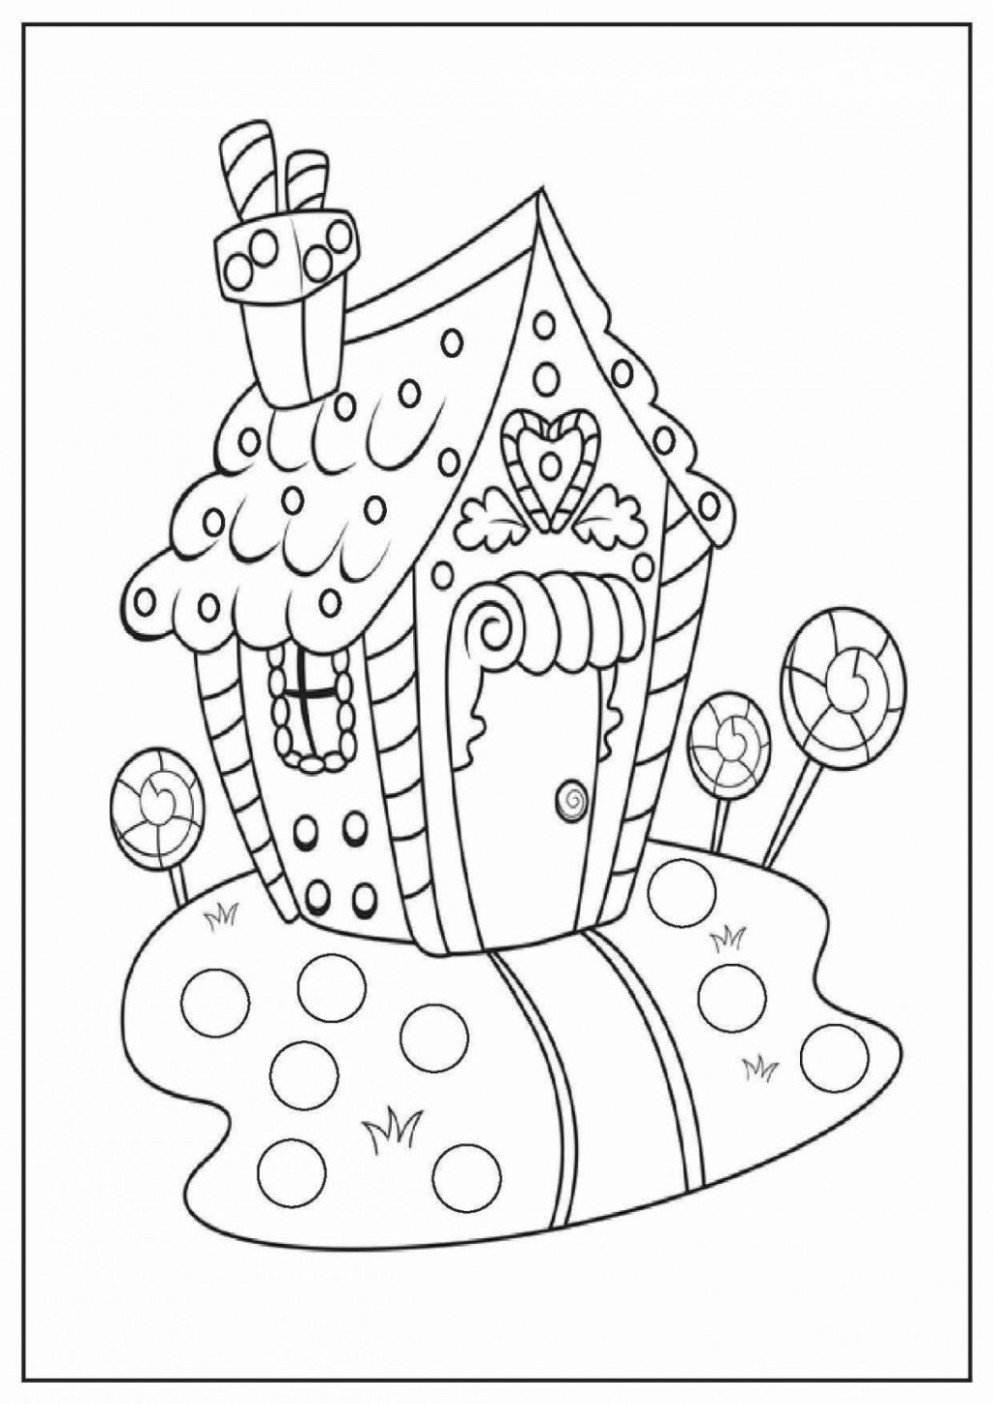 coloring page ~ Christmas Coloring Pages To Print Printable Swifte ..